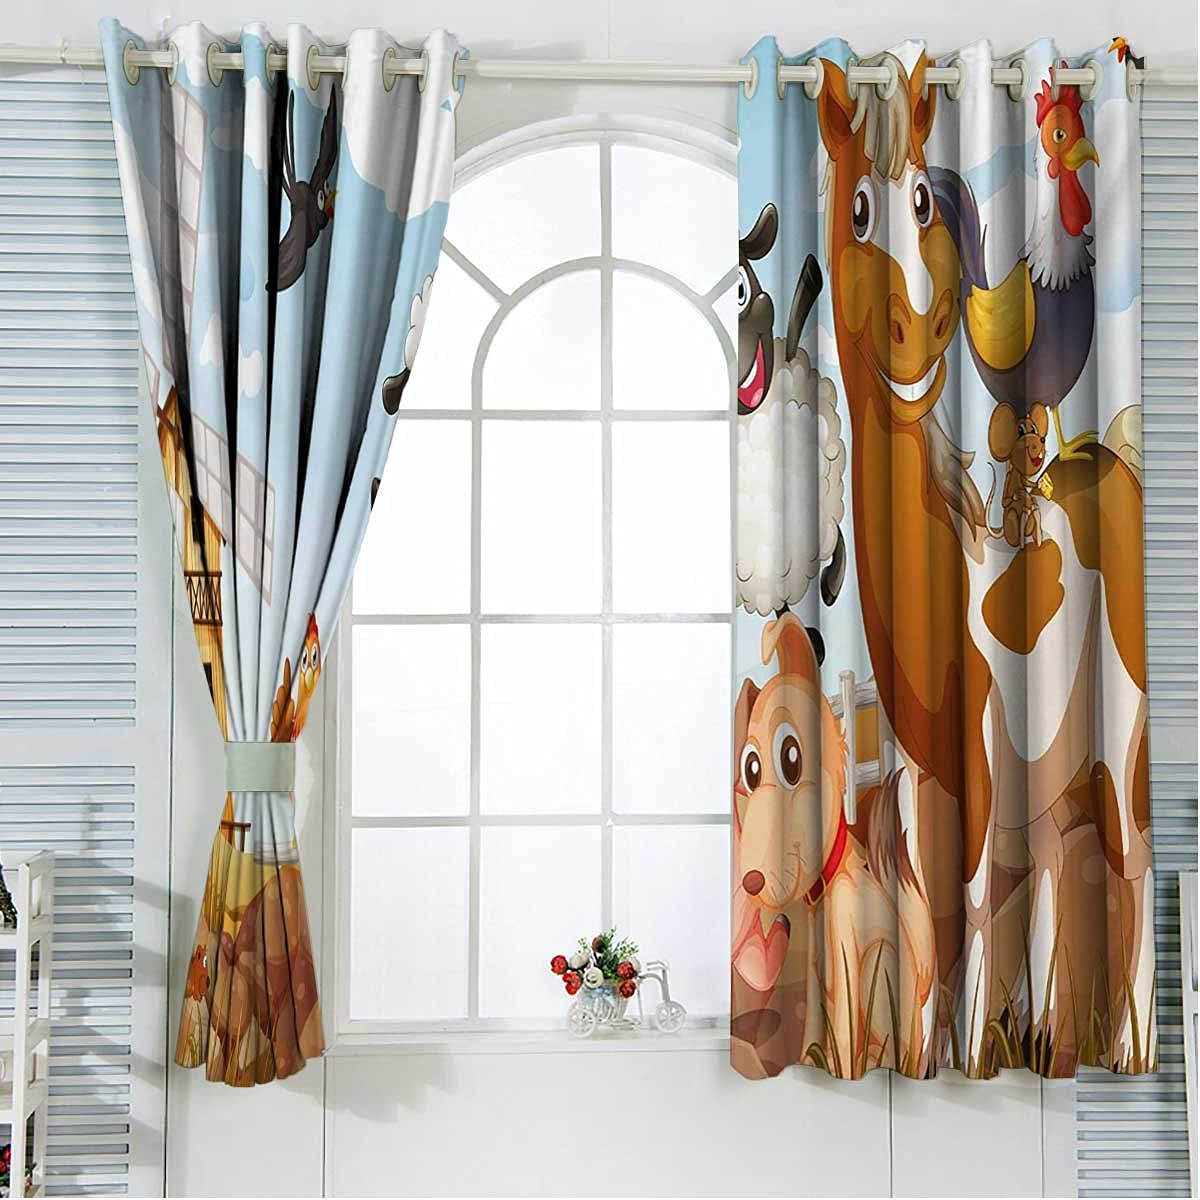 Kids Black Curtains for Bedroom 39 Inch Length Pale Blue and Bro